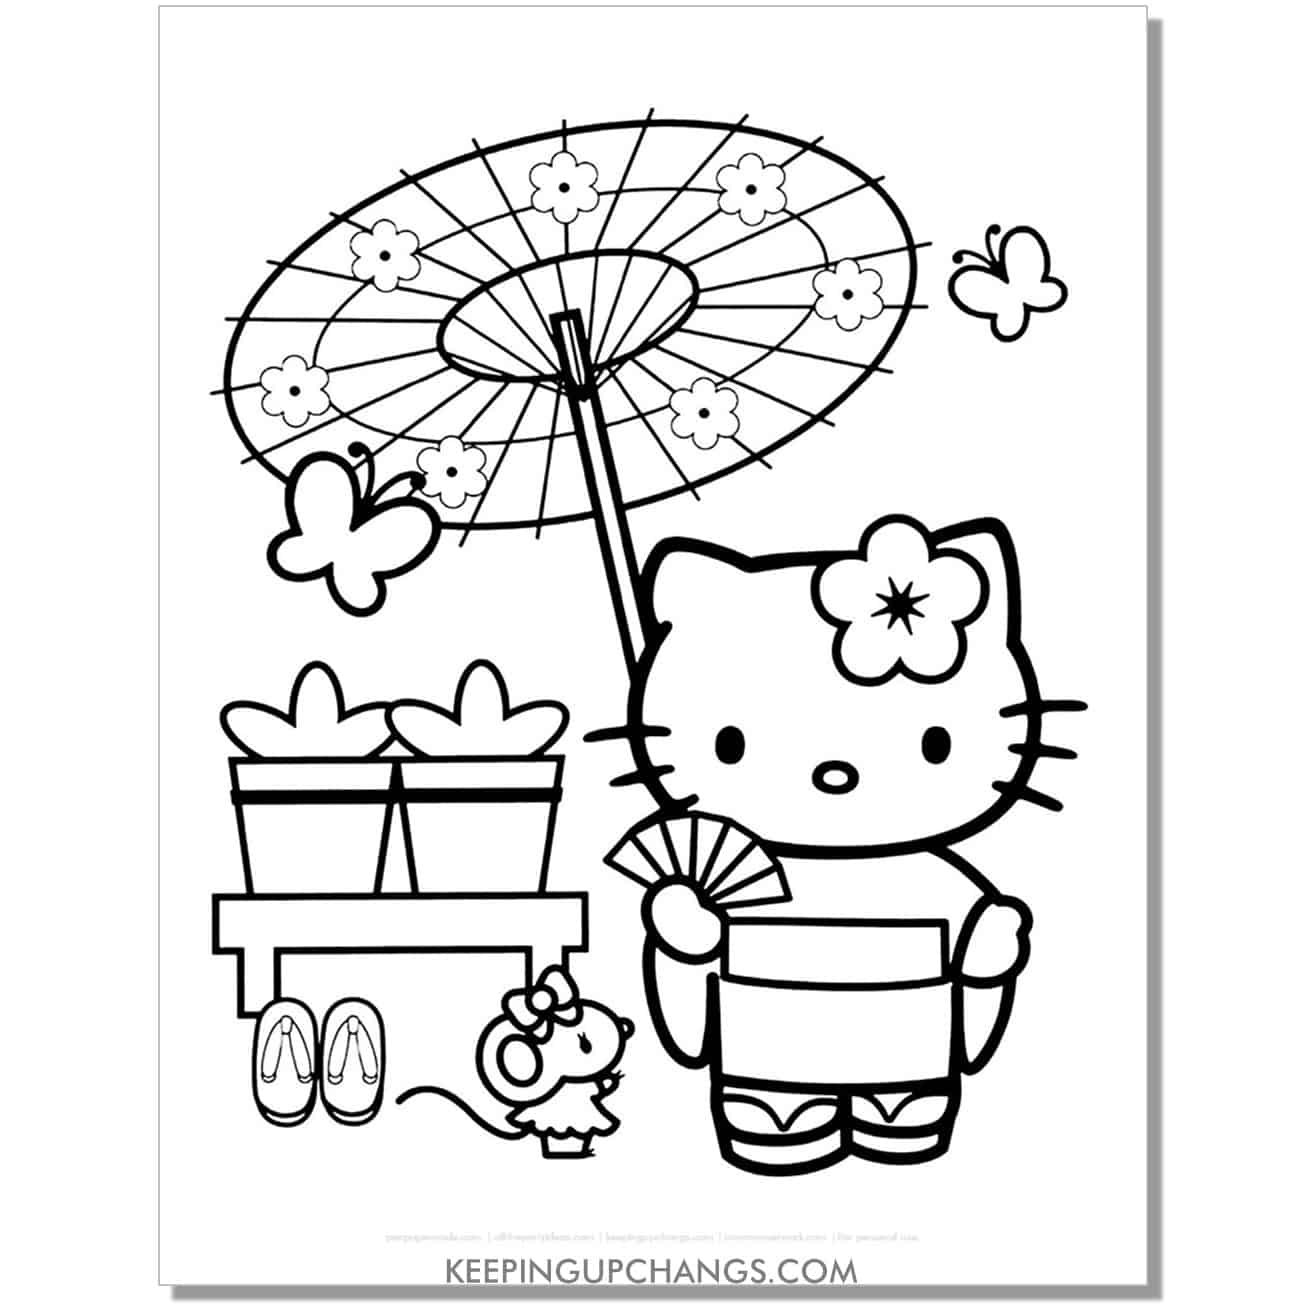 hello kitty in japanese kimono with umbrella coloring page.